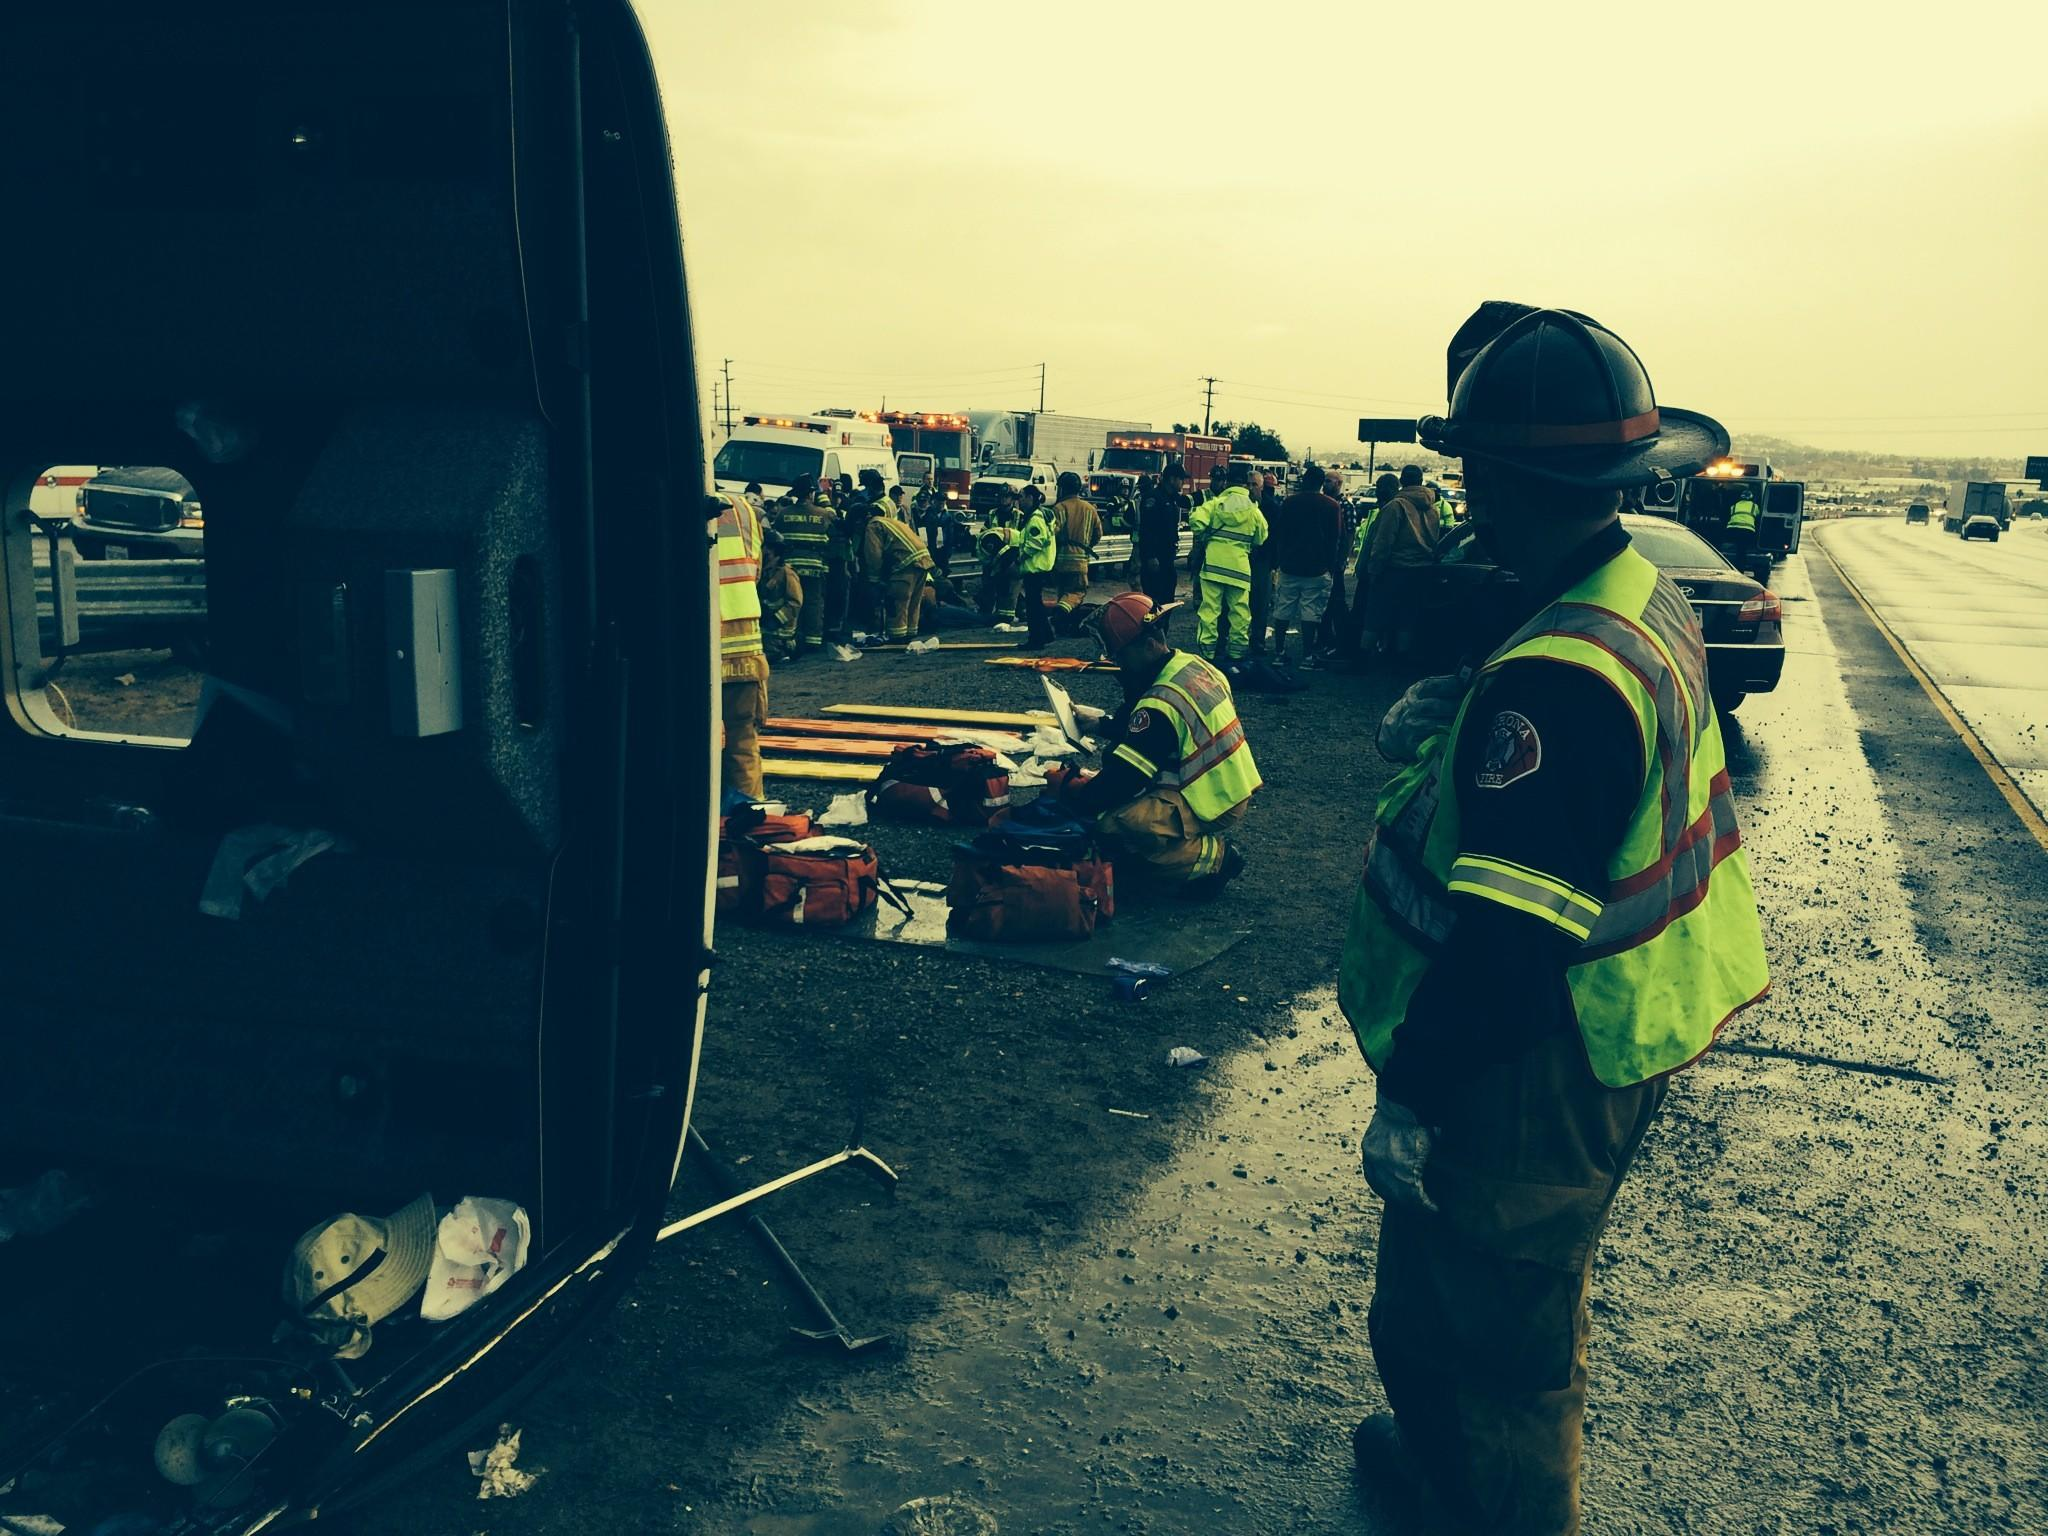 More than 20 people were injured Thursday afternoon in a tour bus crash in Corona.